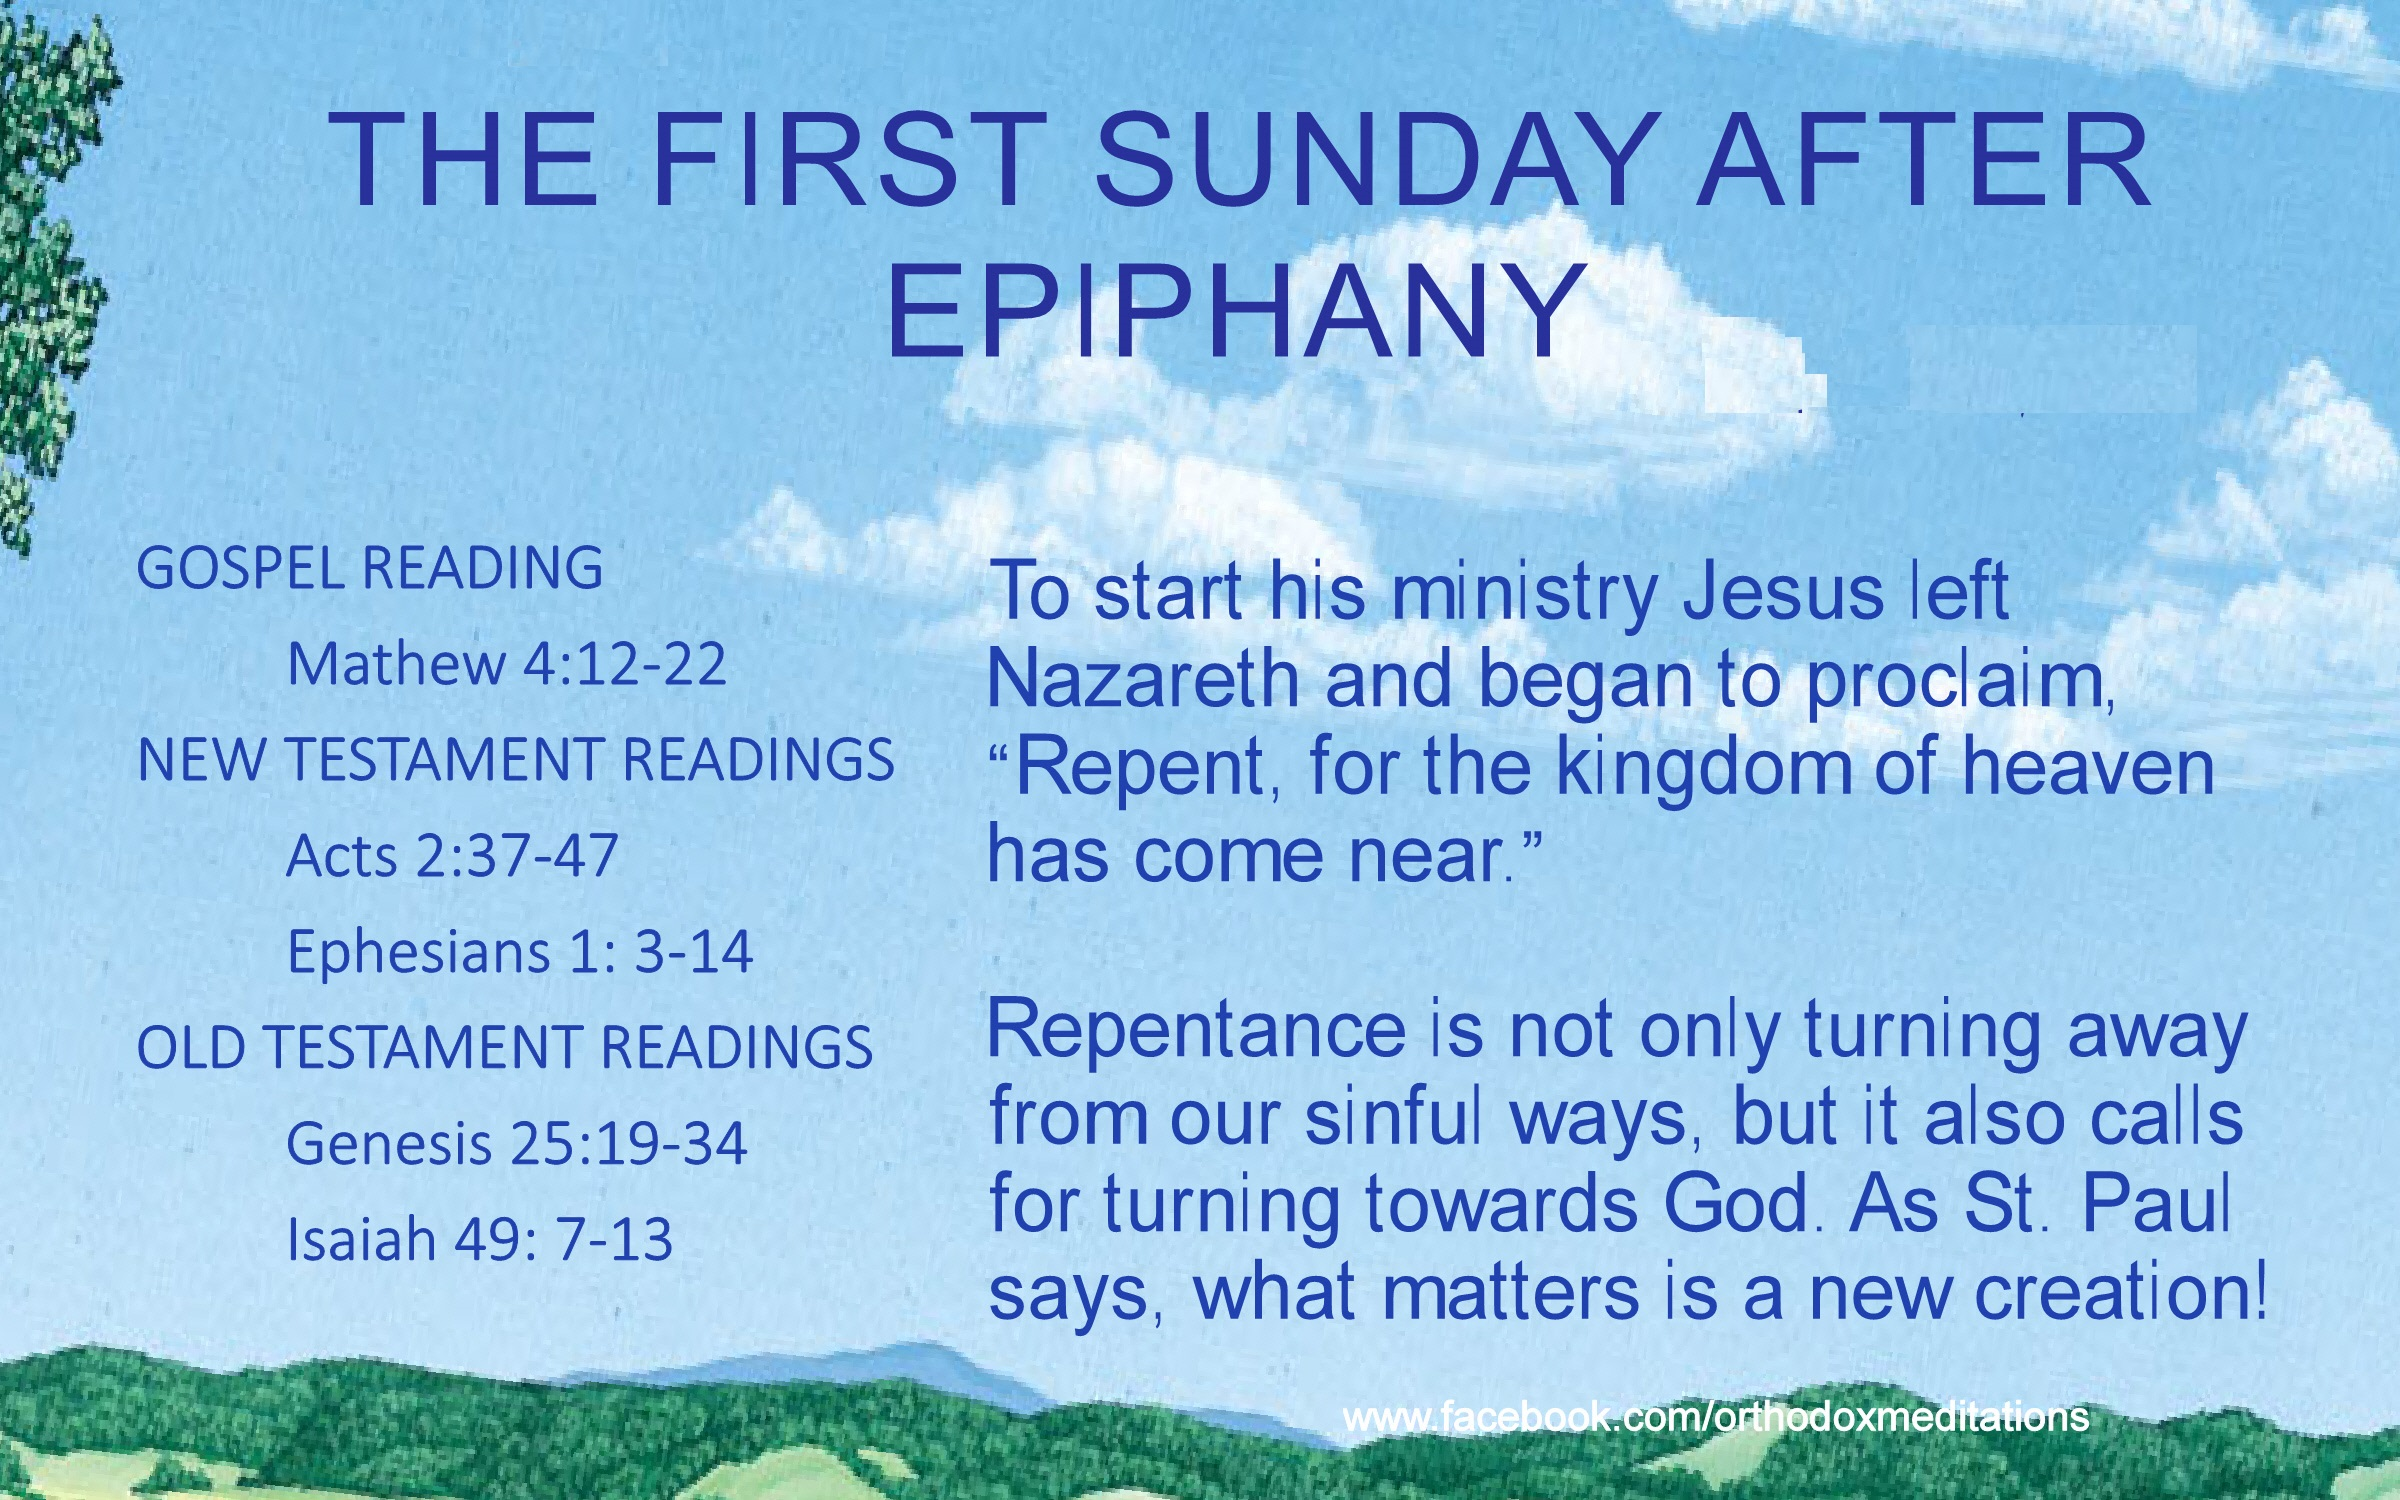 THE-FIRST-SUNDAY-AFTER-EPIPHANY-NEW_001